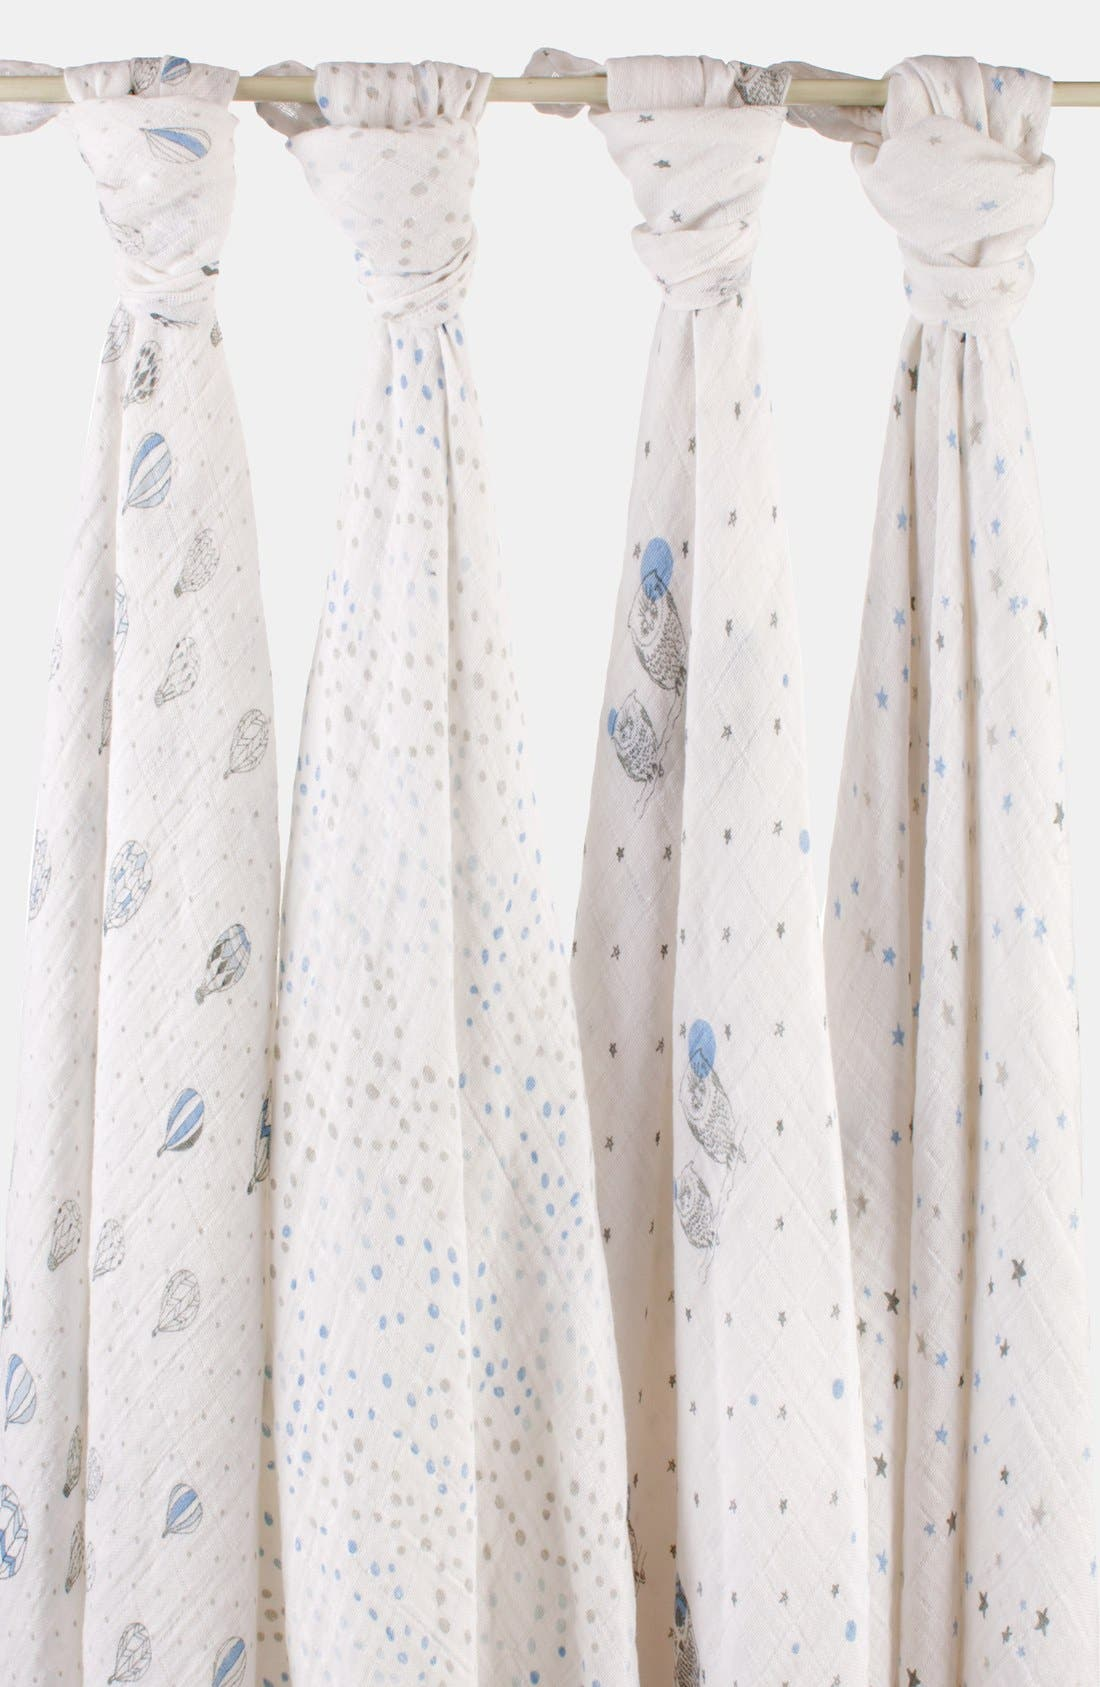 Alternate Image 1 Selected - aden + anais Classic Swaddling Cloths (4-Pack)